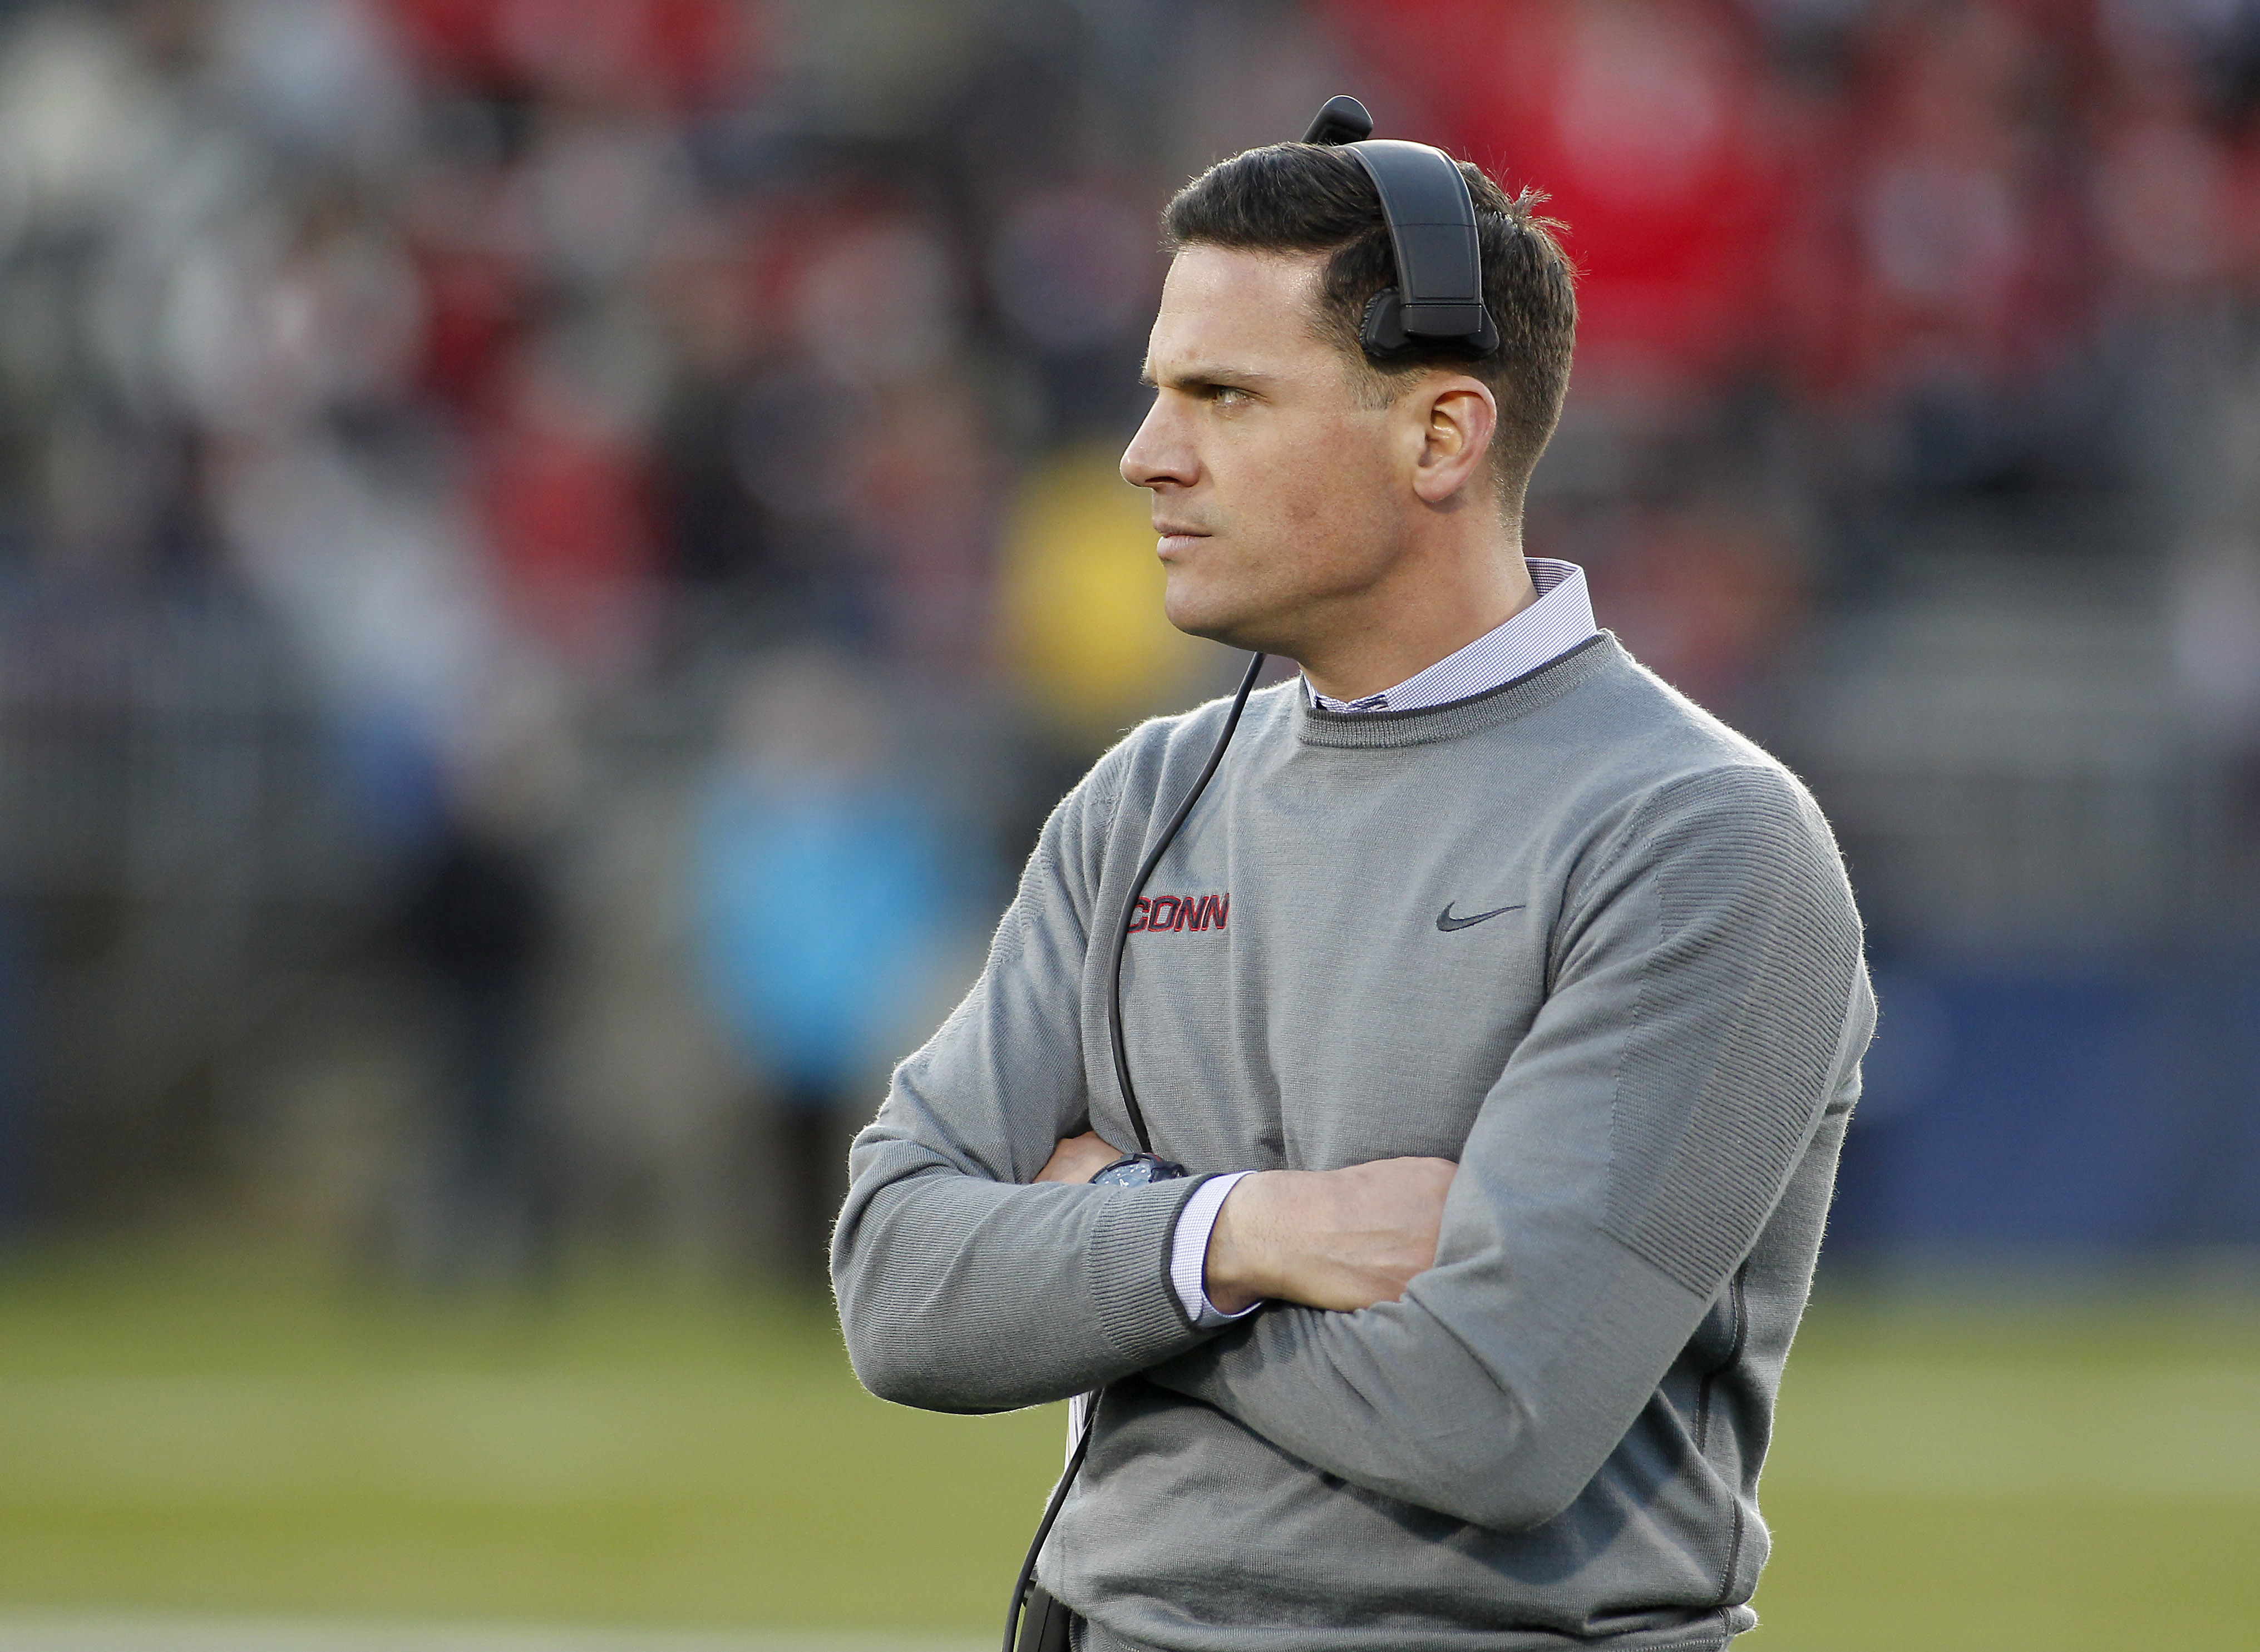 FILE - This Nov. 21, 2015 photo shows Connecticut head coach Bob Diaco during the first quarter of an NCAA college football game against Houston in East Hartford, Conn. Diaco has agreed to a two-year contract extension designed to keep him in Storrs throu